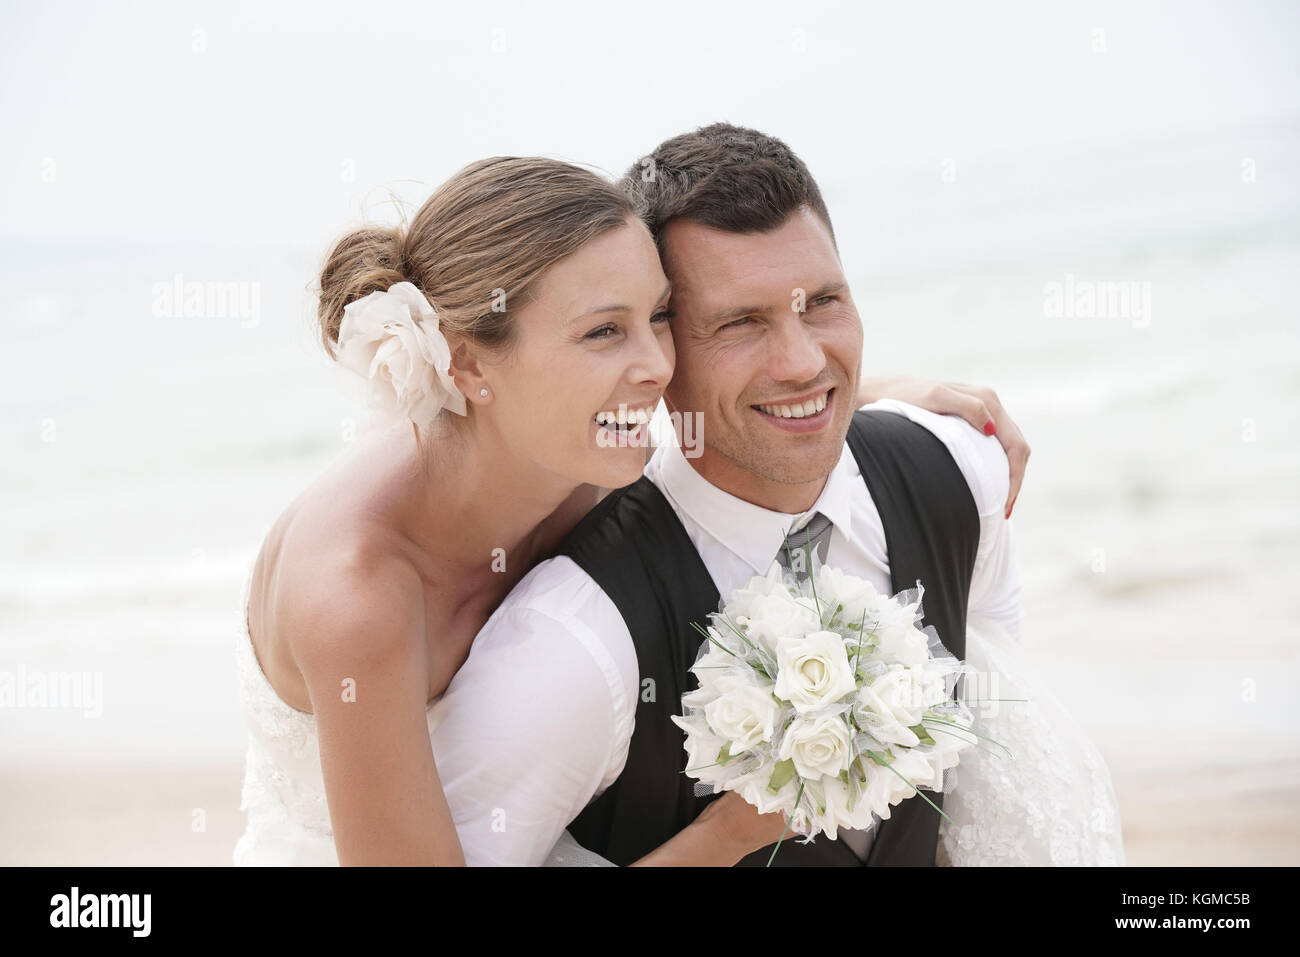 Groom donner piggyback ride à bride sur la plage Photo Stock